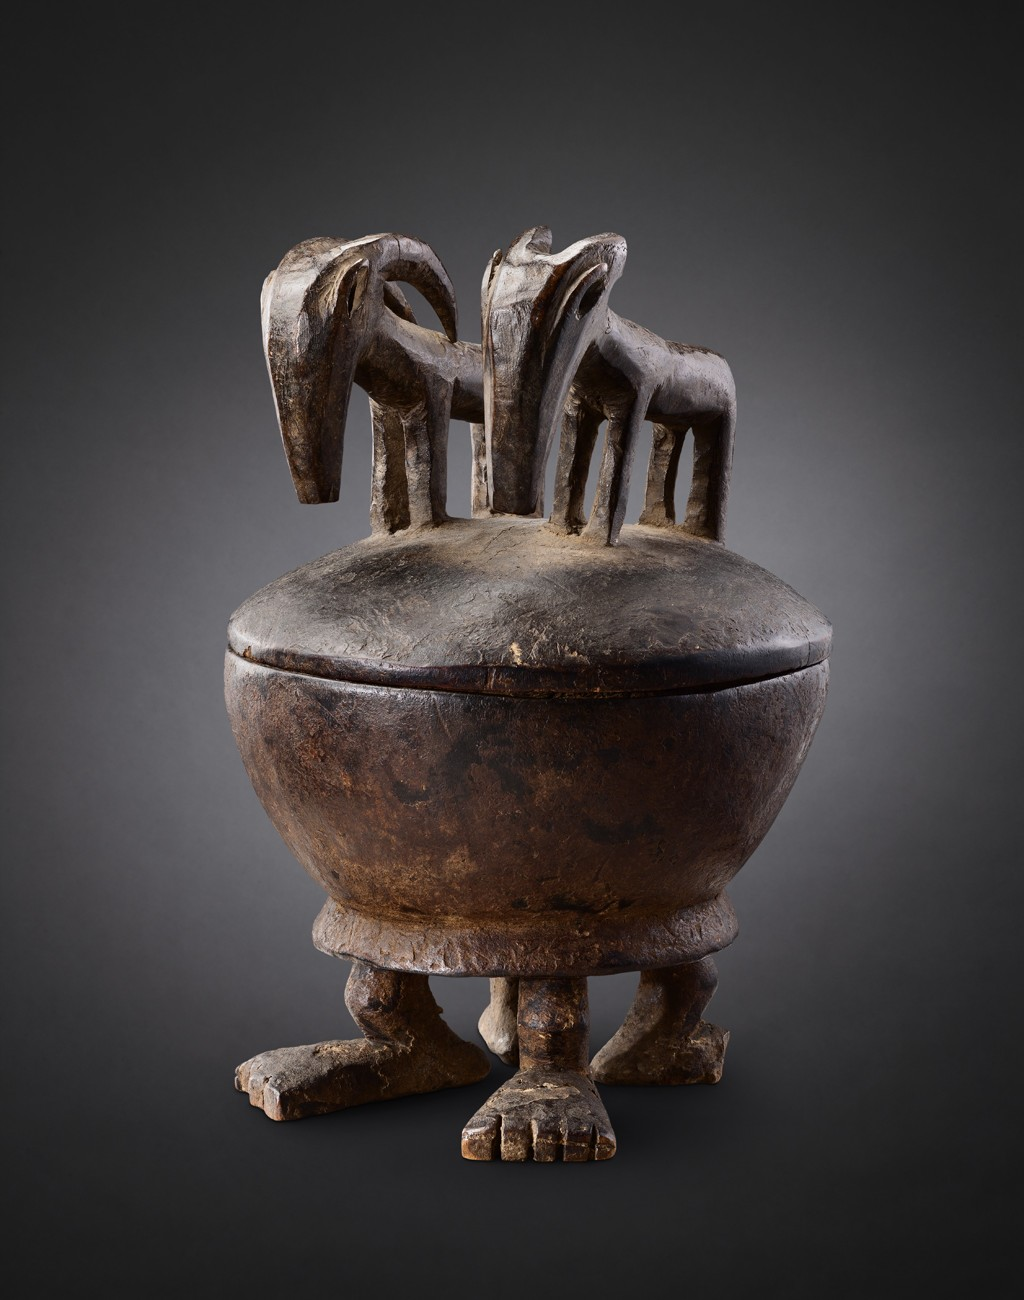 Bamana bowl, Mali Wood - height 29 cm Provenance: Old European Collection